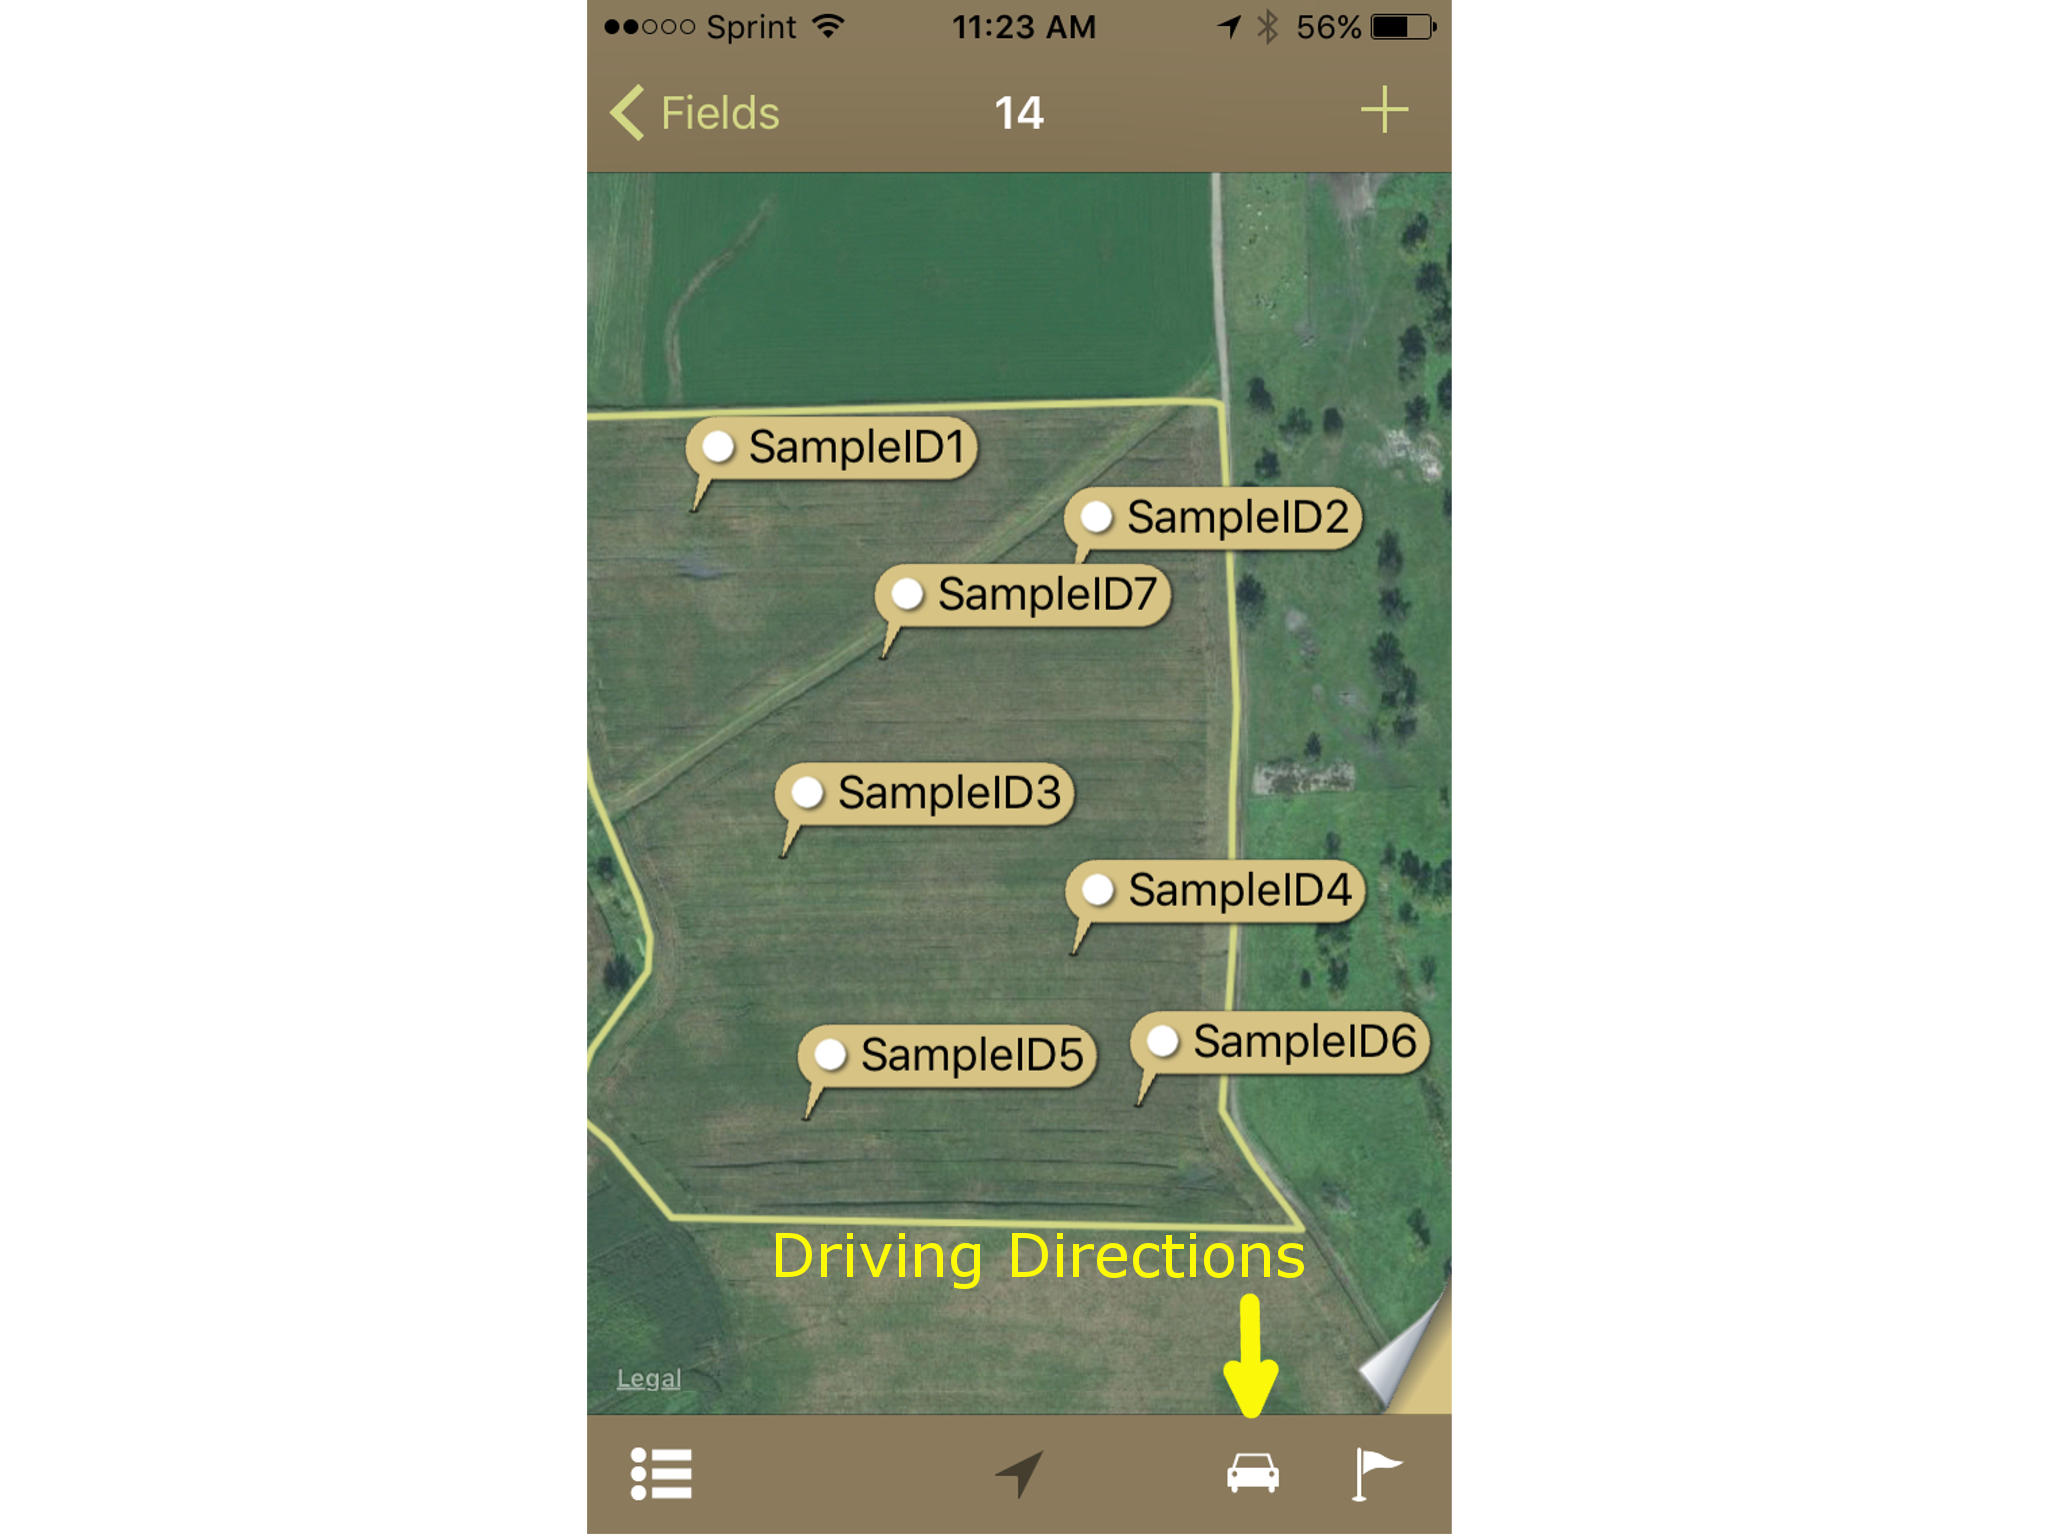 Turn by Turn Directions in iPhone Sampling App